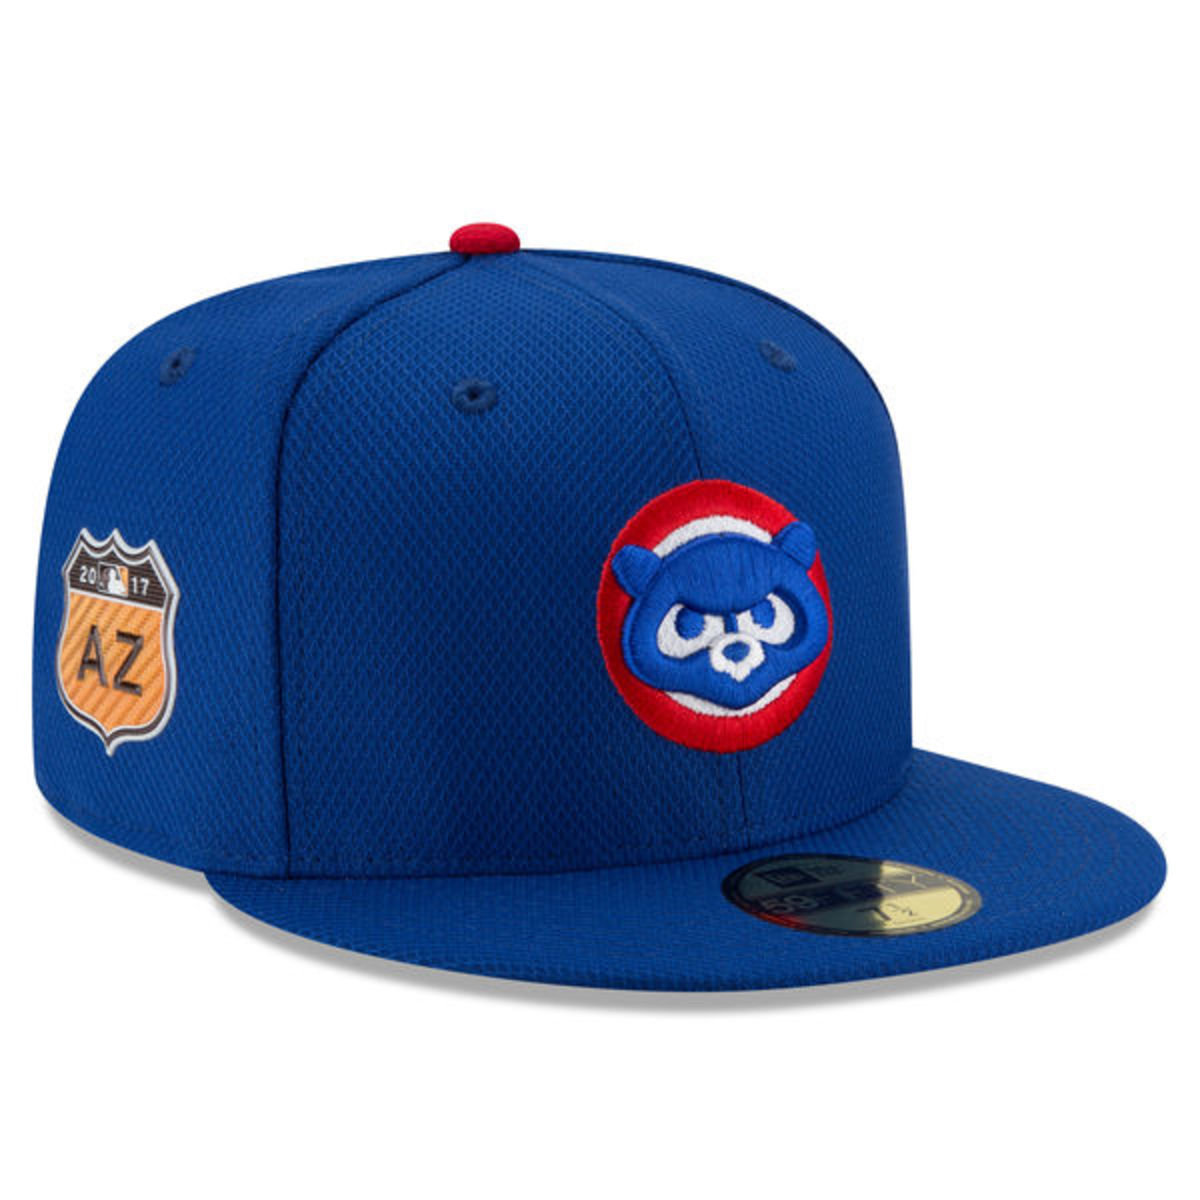 cubs-spring-training-hat.jpg